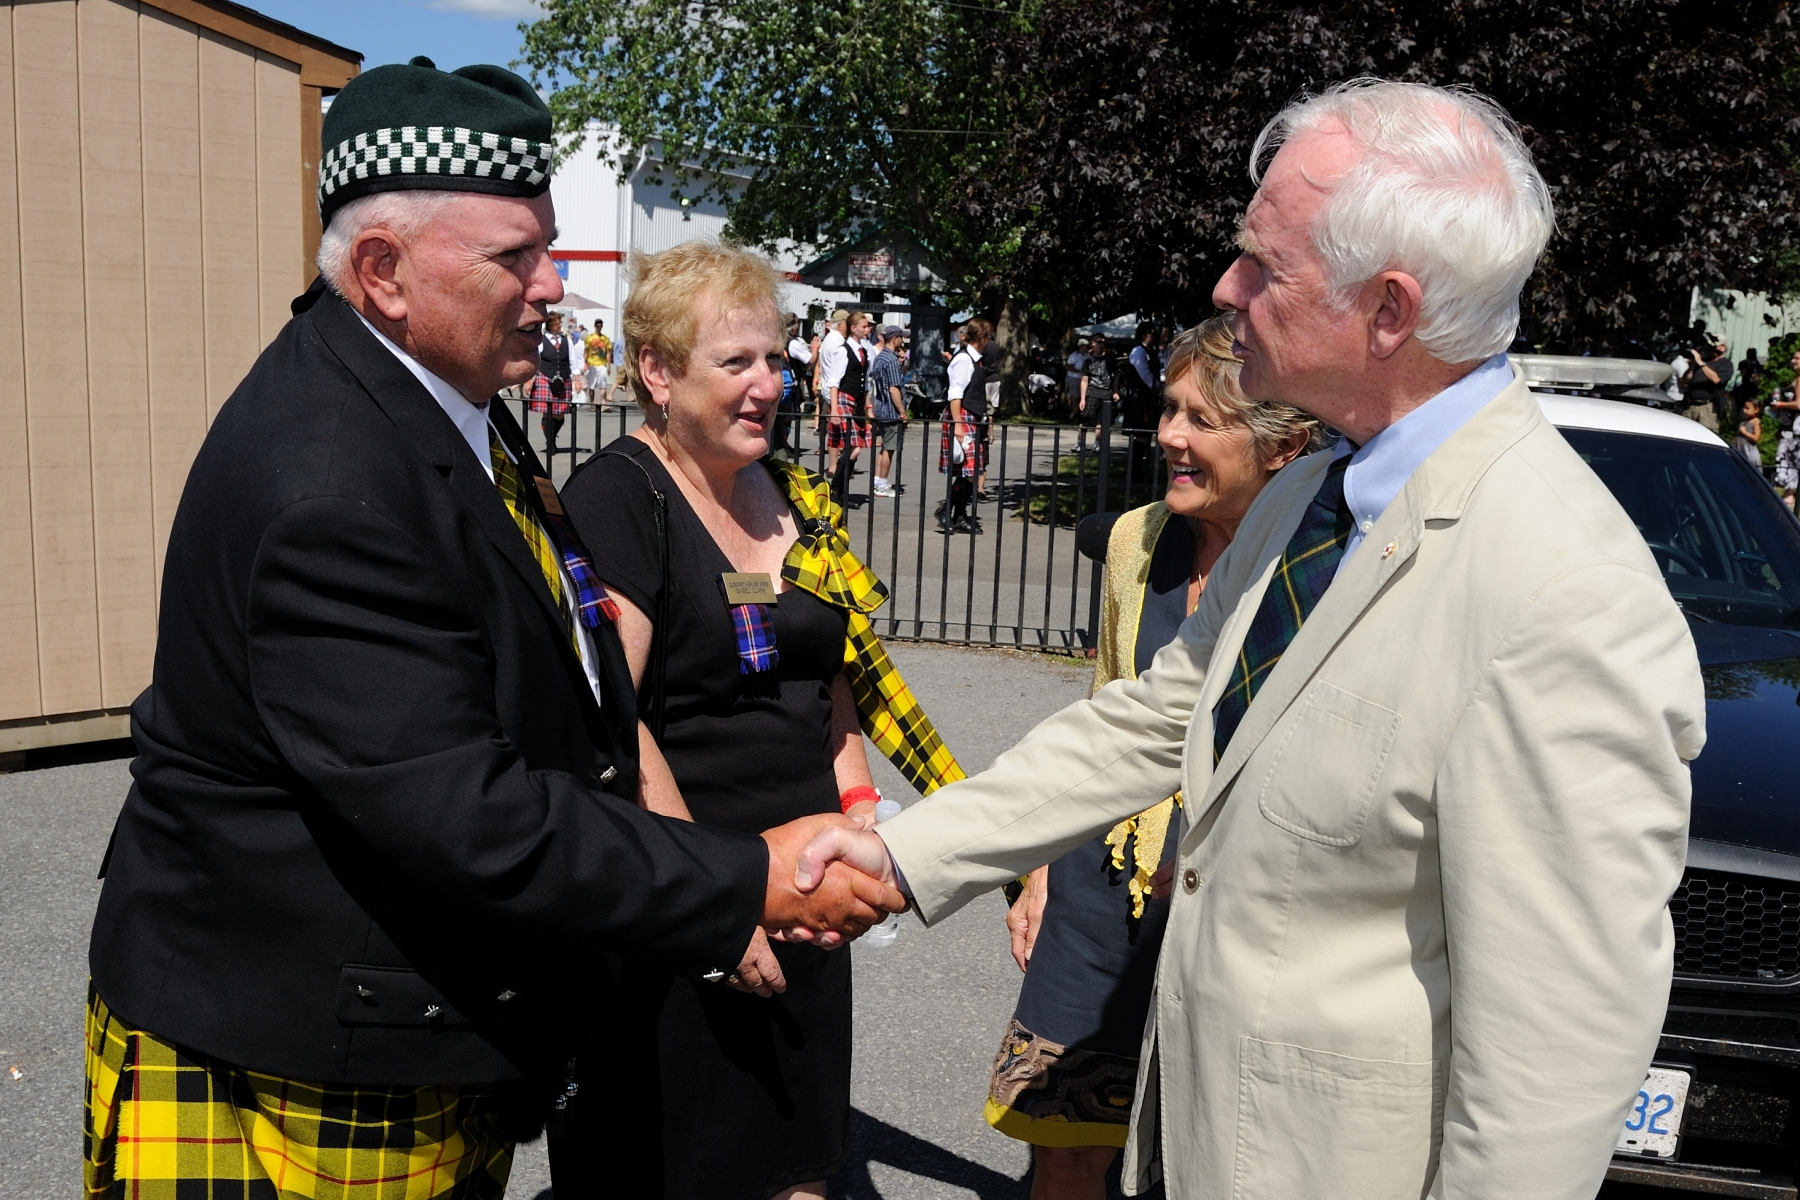 Their Excellencies were welcomed to the Games by Mr. Donaldson MacLeod, President of the Glengarry Highland Games, and his wife, Mrs. Isobel MacLeod.